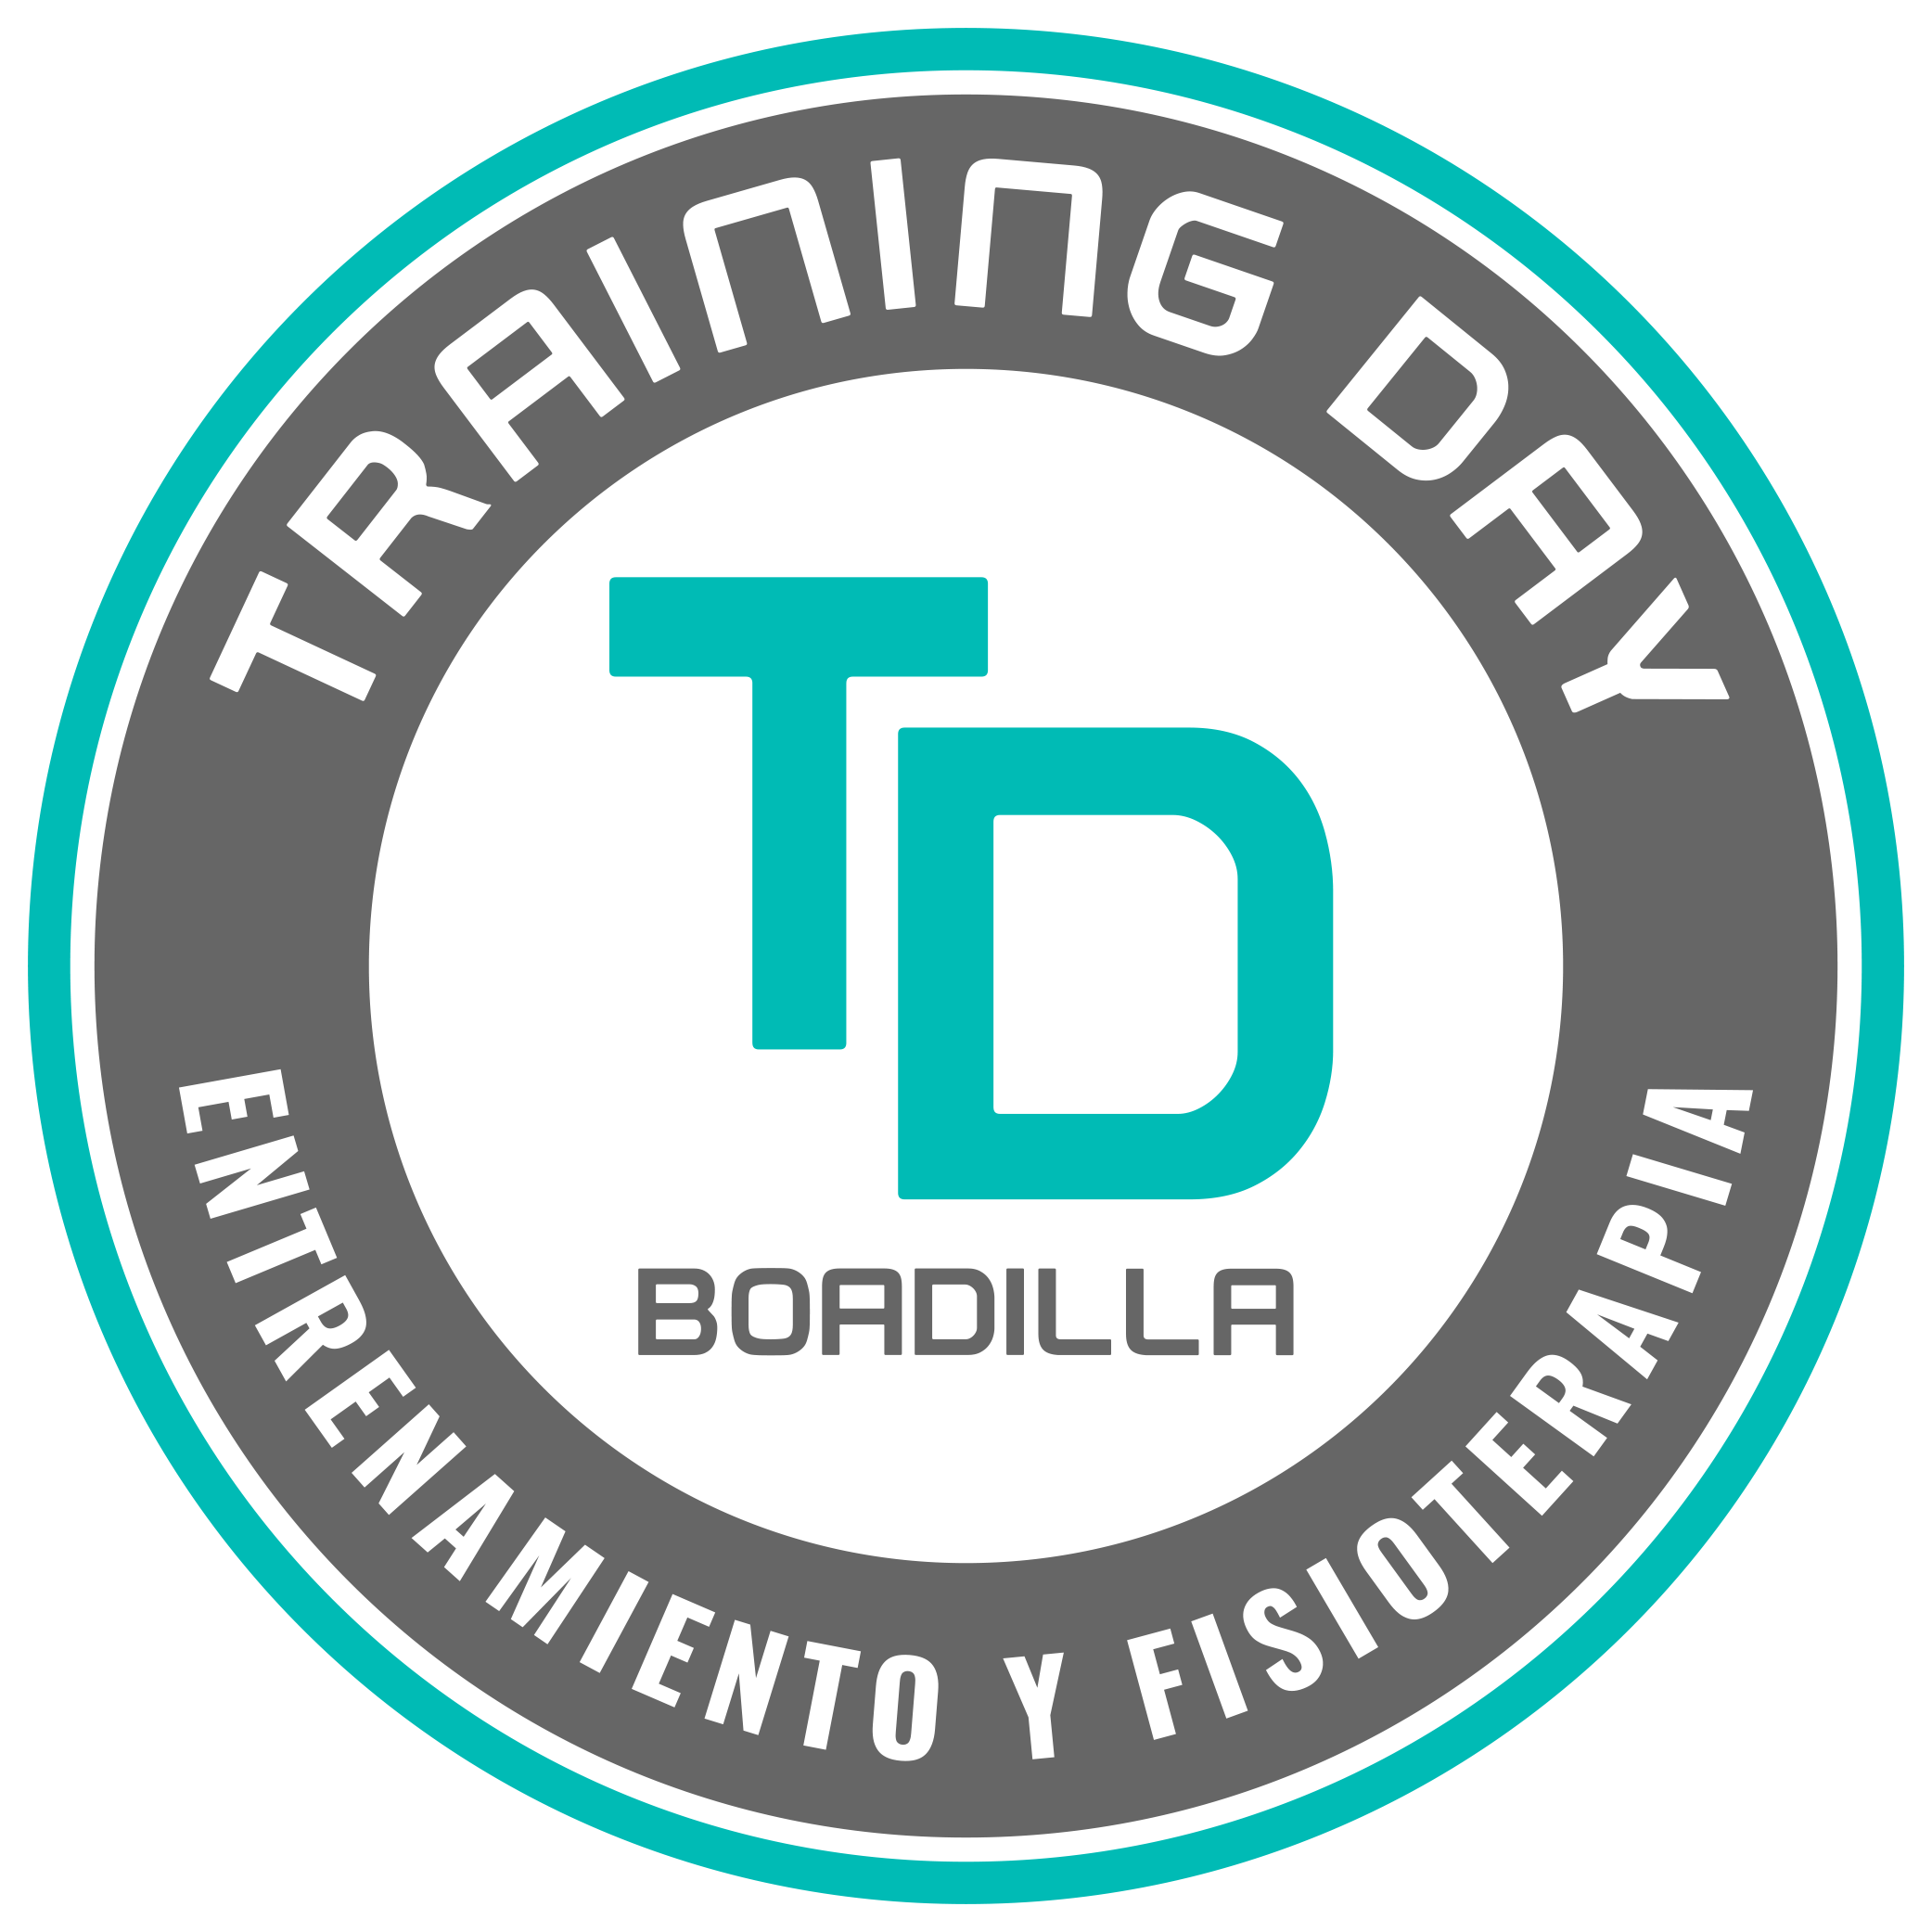 Training Day Boadilla